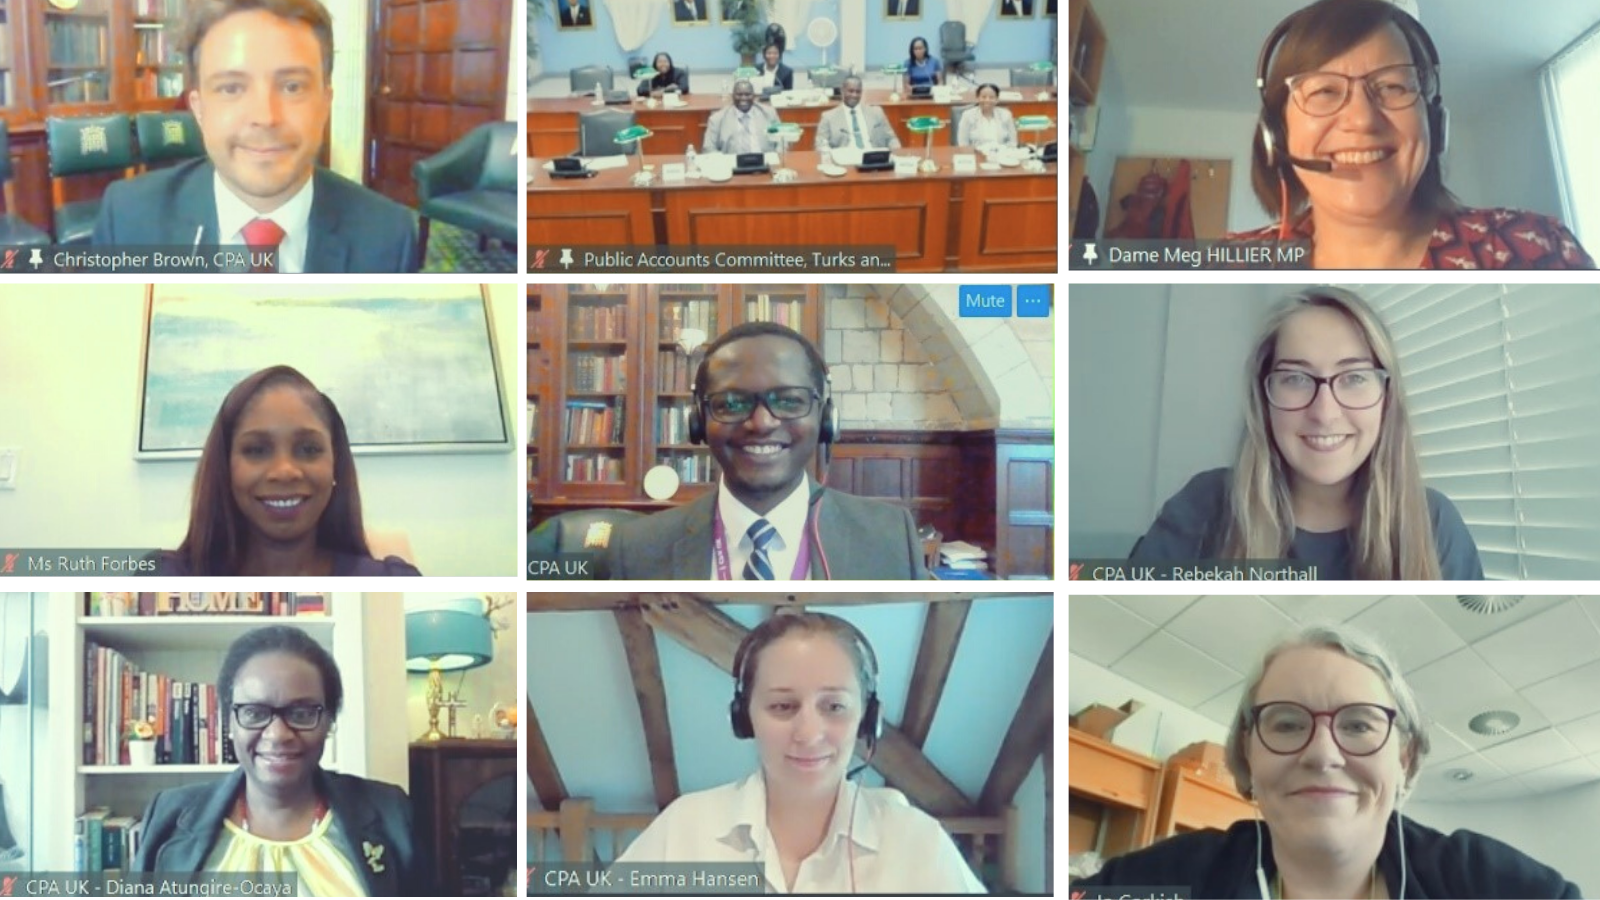 Participants and speakers at the Turks and Caicos Islands Public Accounts Committee Training, July 2021.